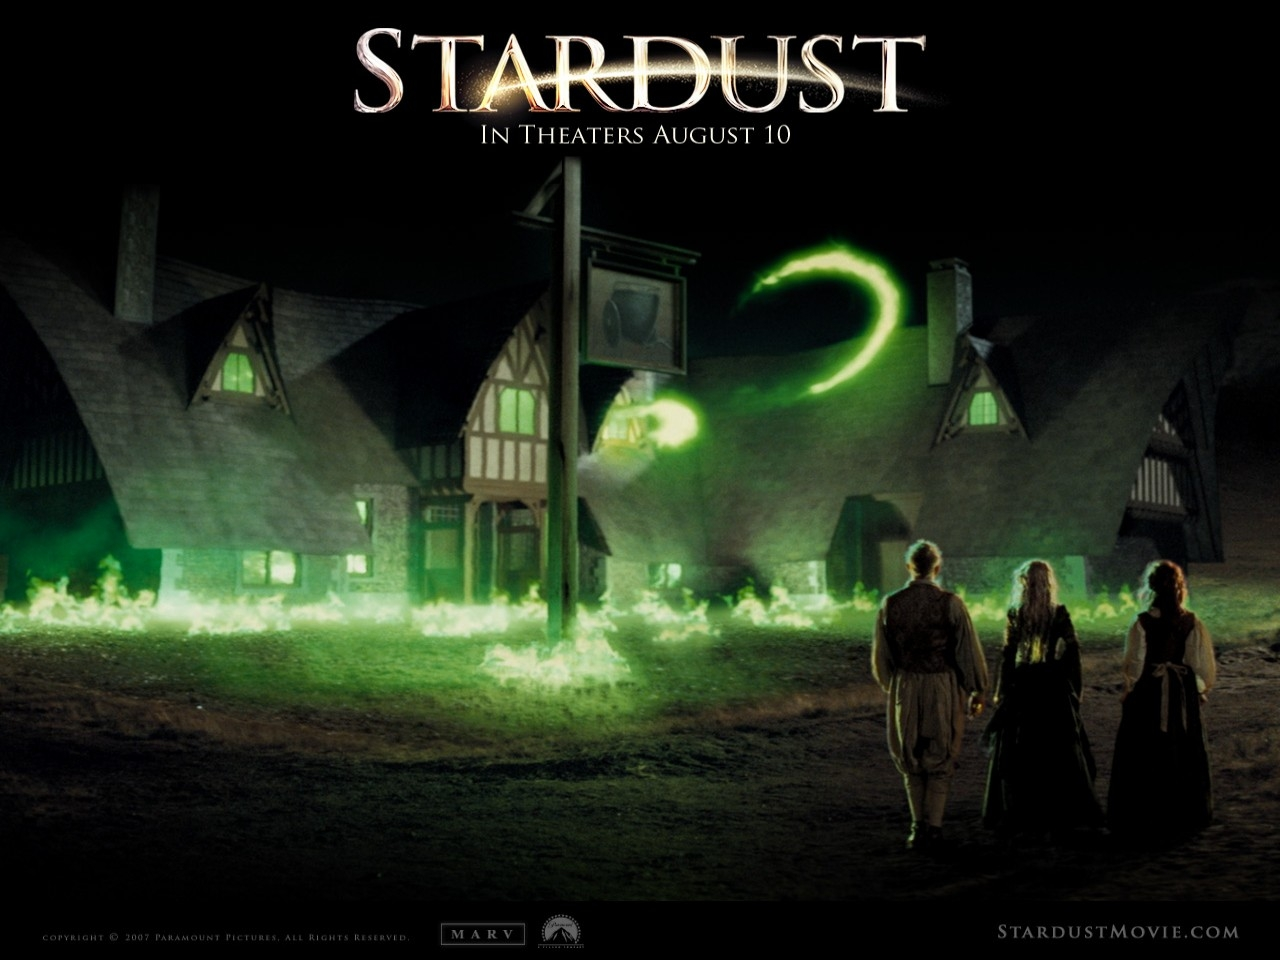 Uno splendido wallpaper del film Stardust